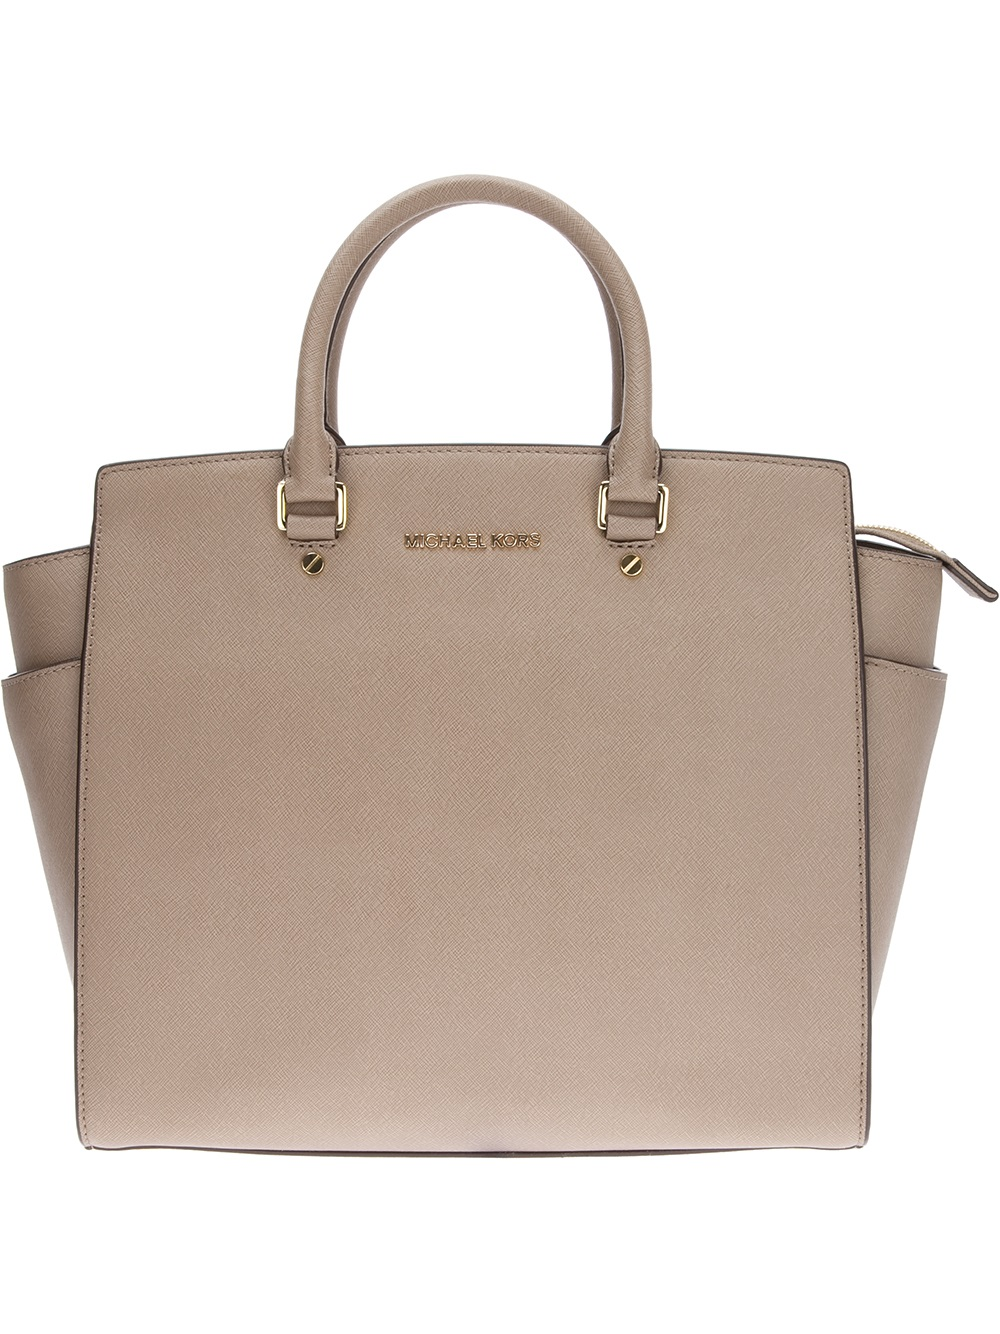 michael michael kors selma tote in gray lyst. Black Bedroom Furniture Sets. Home Design Ideas